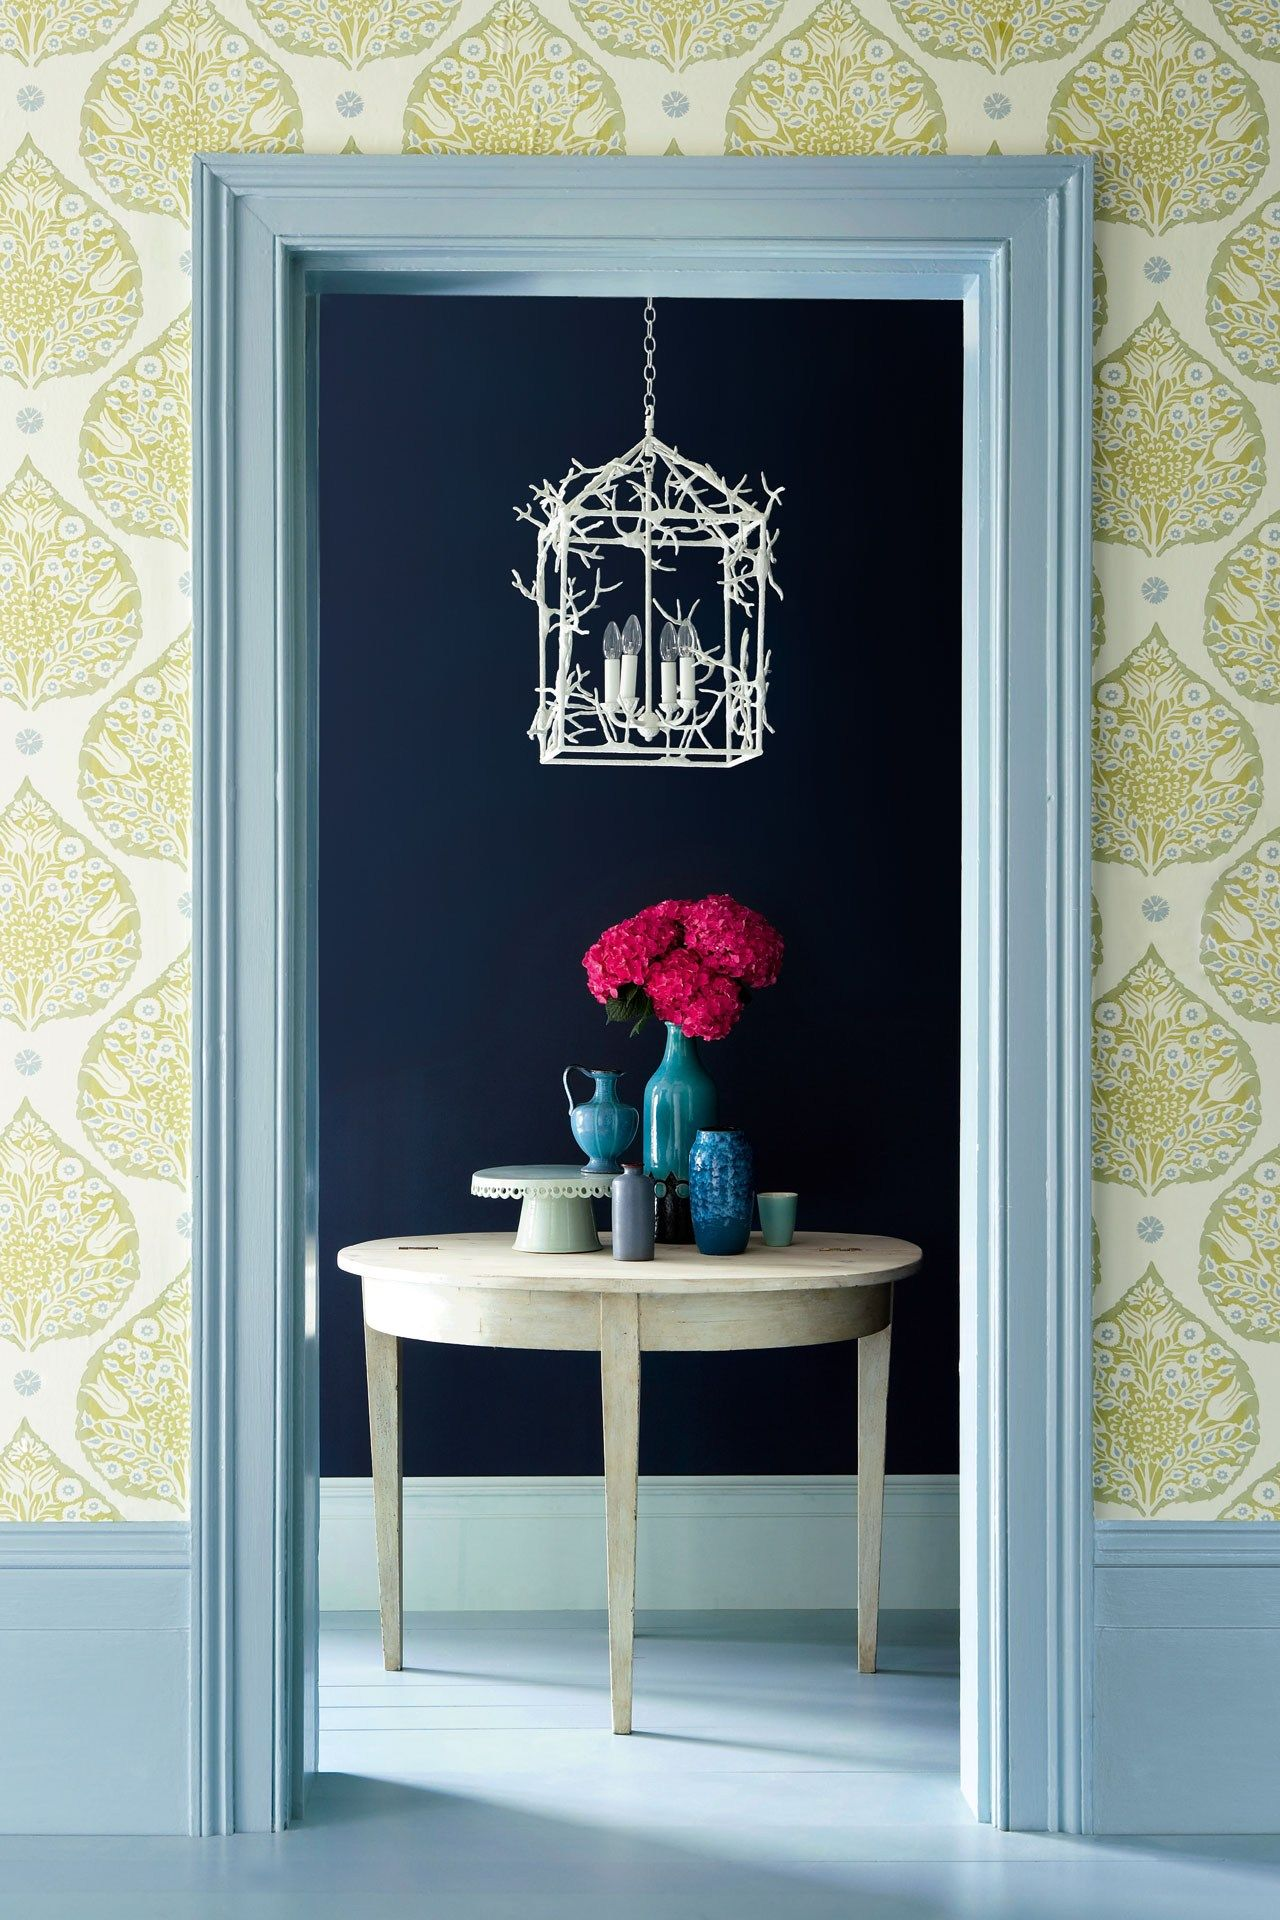 Hallway wallpaper or paint  Room design ideas for decorating with something blue  Home from